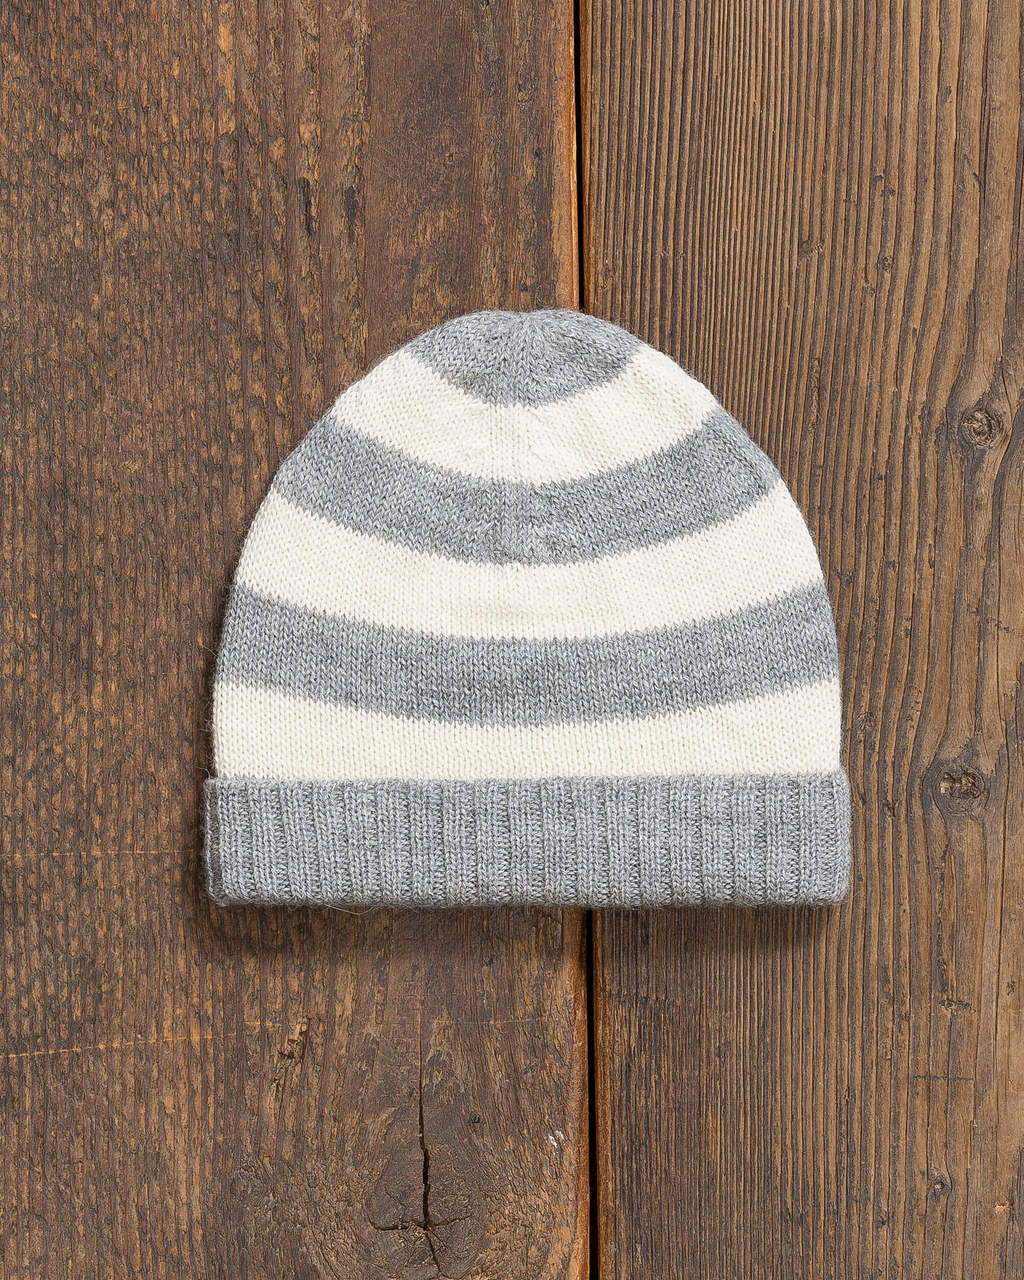 alicia adams alpaca charlie hat, alpaca hats for kids, alpaca beanie hat, all fair-trade made, alpaca vs cashmere, light grey and ivory hat